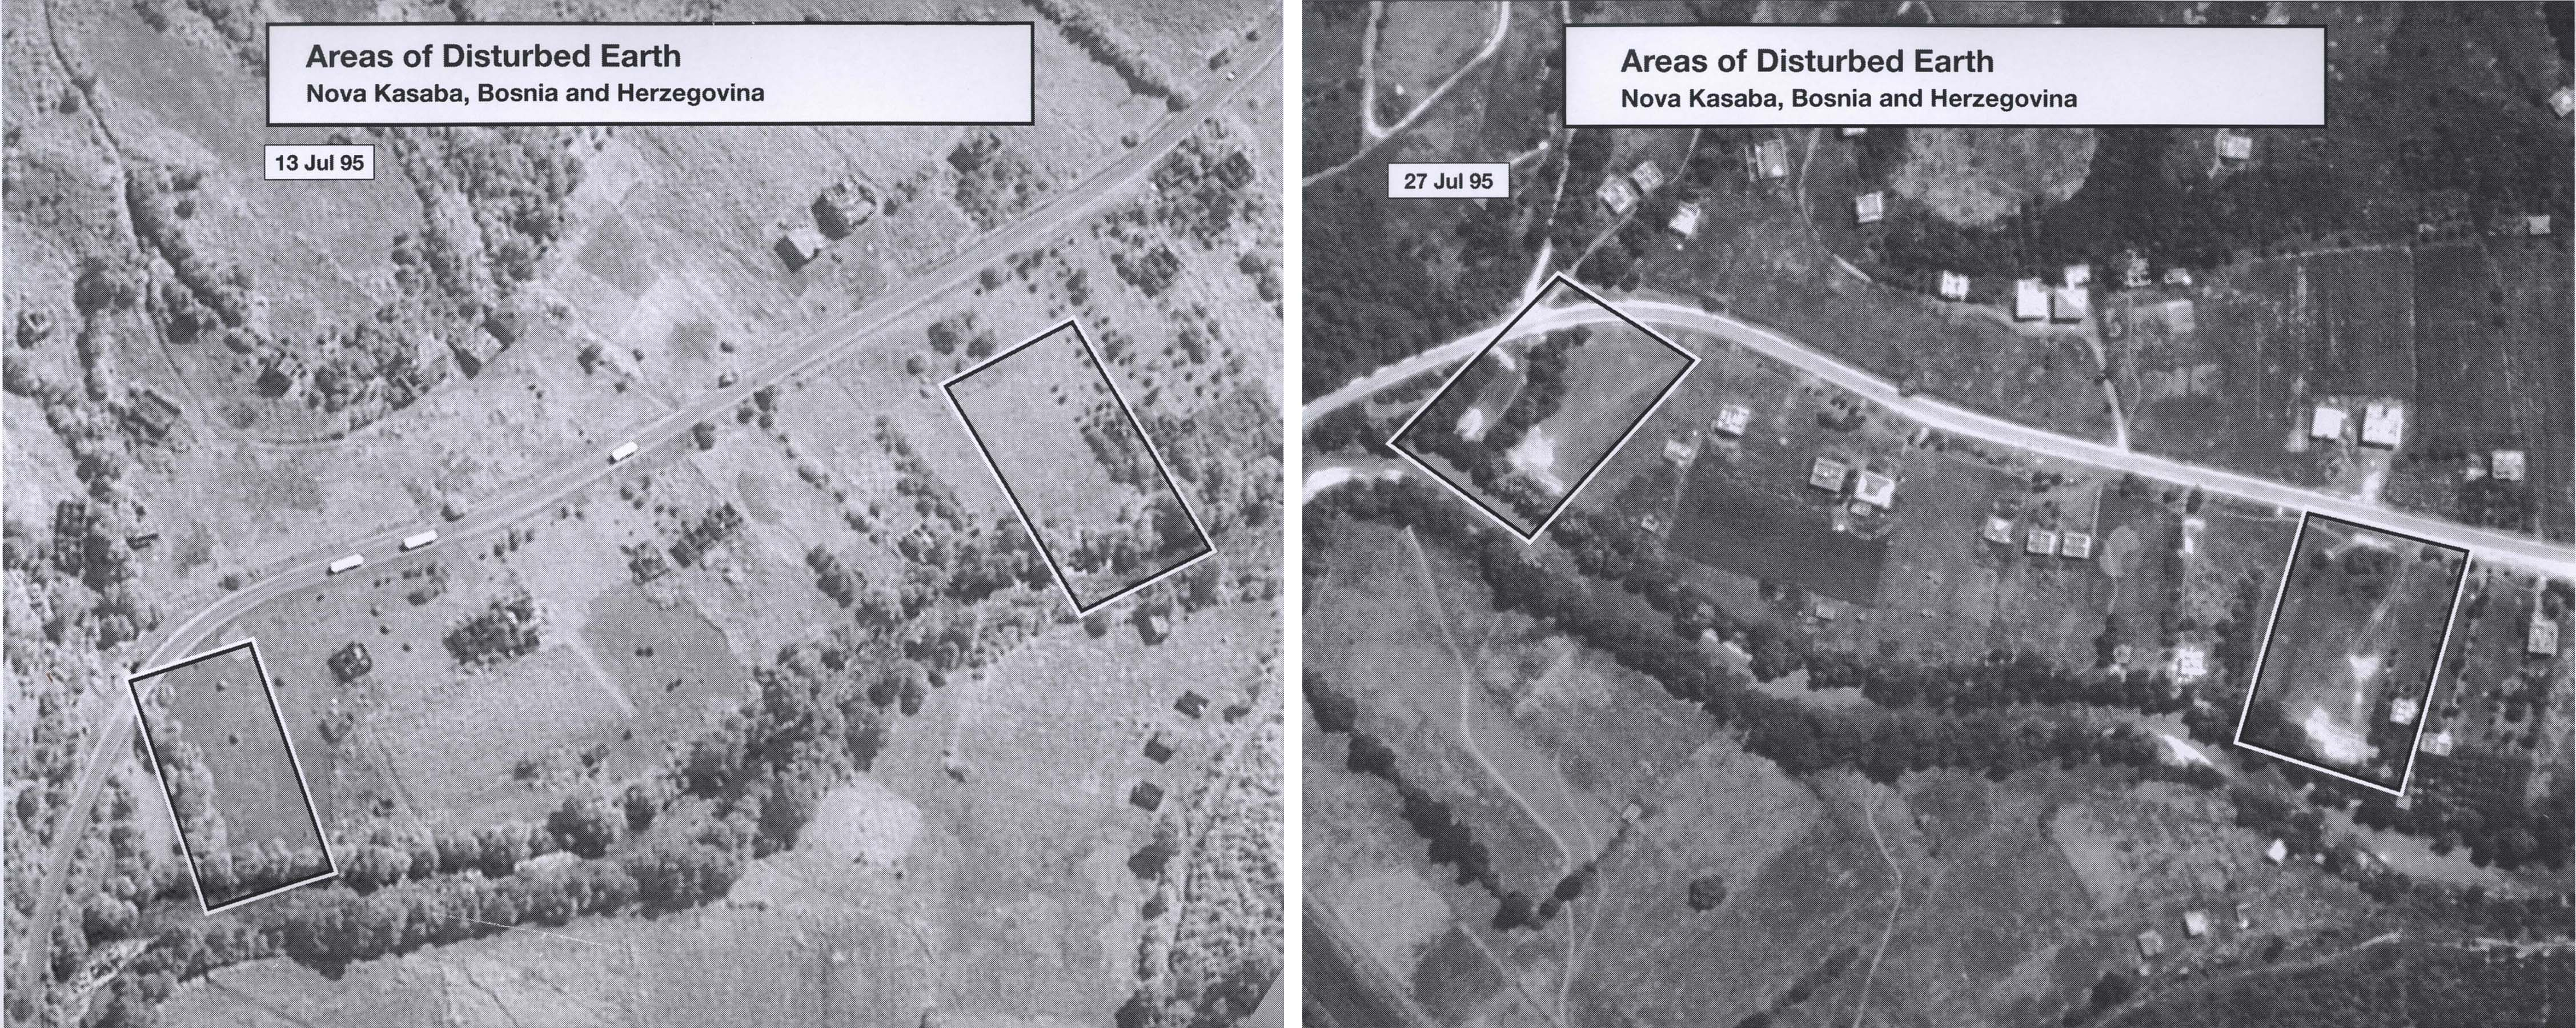 "Images taken on July 13, 1995 and July 27, 1995 show the ""before"" and ""after"" of areas of disturbed earth. Road to Dayton paved with genocide, International passivity, lack of support for peacekeepers doomed Srebrenica 20 years ago; 8,000 Muslim refugees died.""  National Security Archive Electronic Briefing Book No. 535, posted November 23, 2015. Edited by Tom Blanton and Emily Willard."